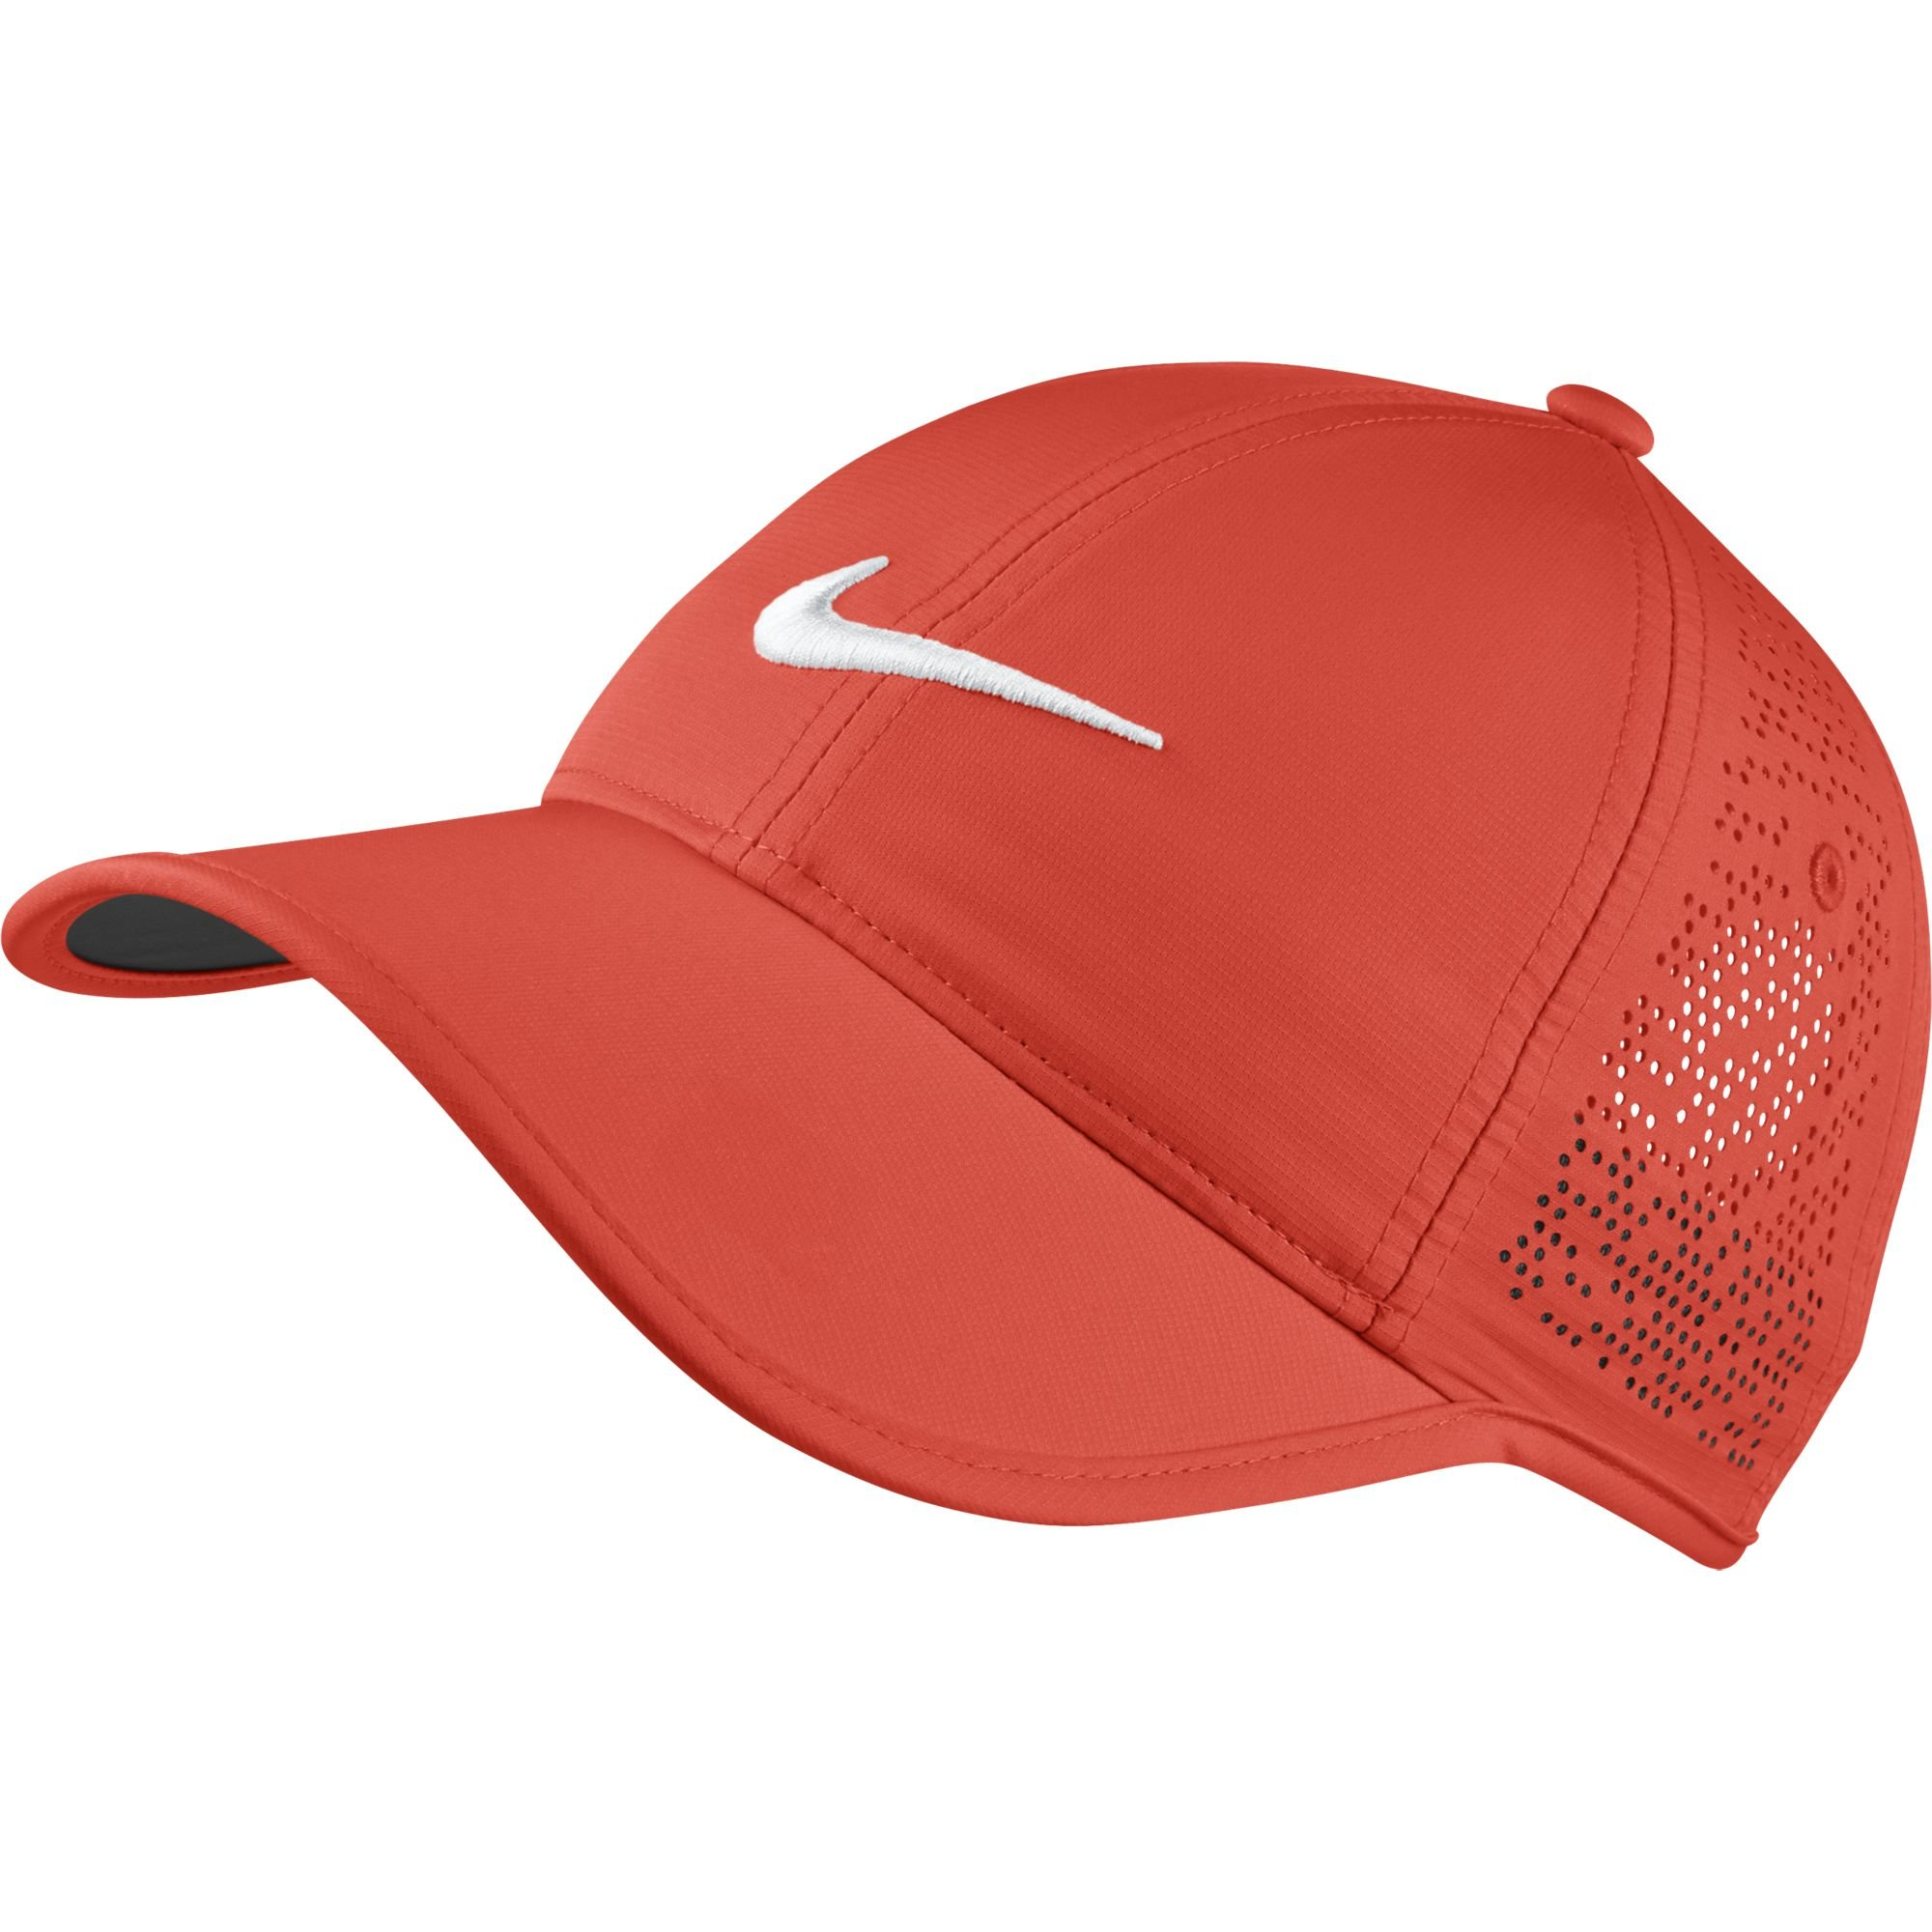 NIKE Women's Perforated Hat, Max Orange/White, One Size by Nike